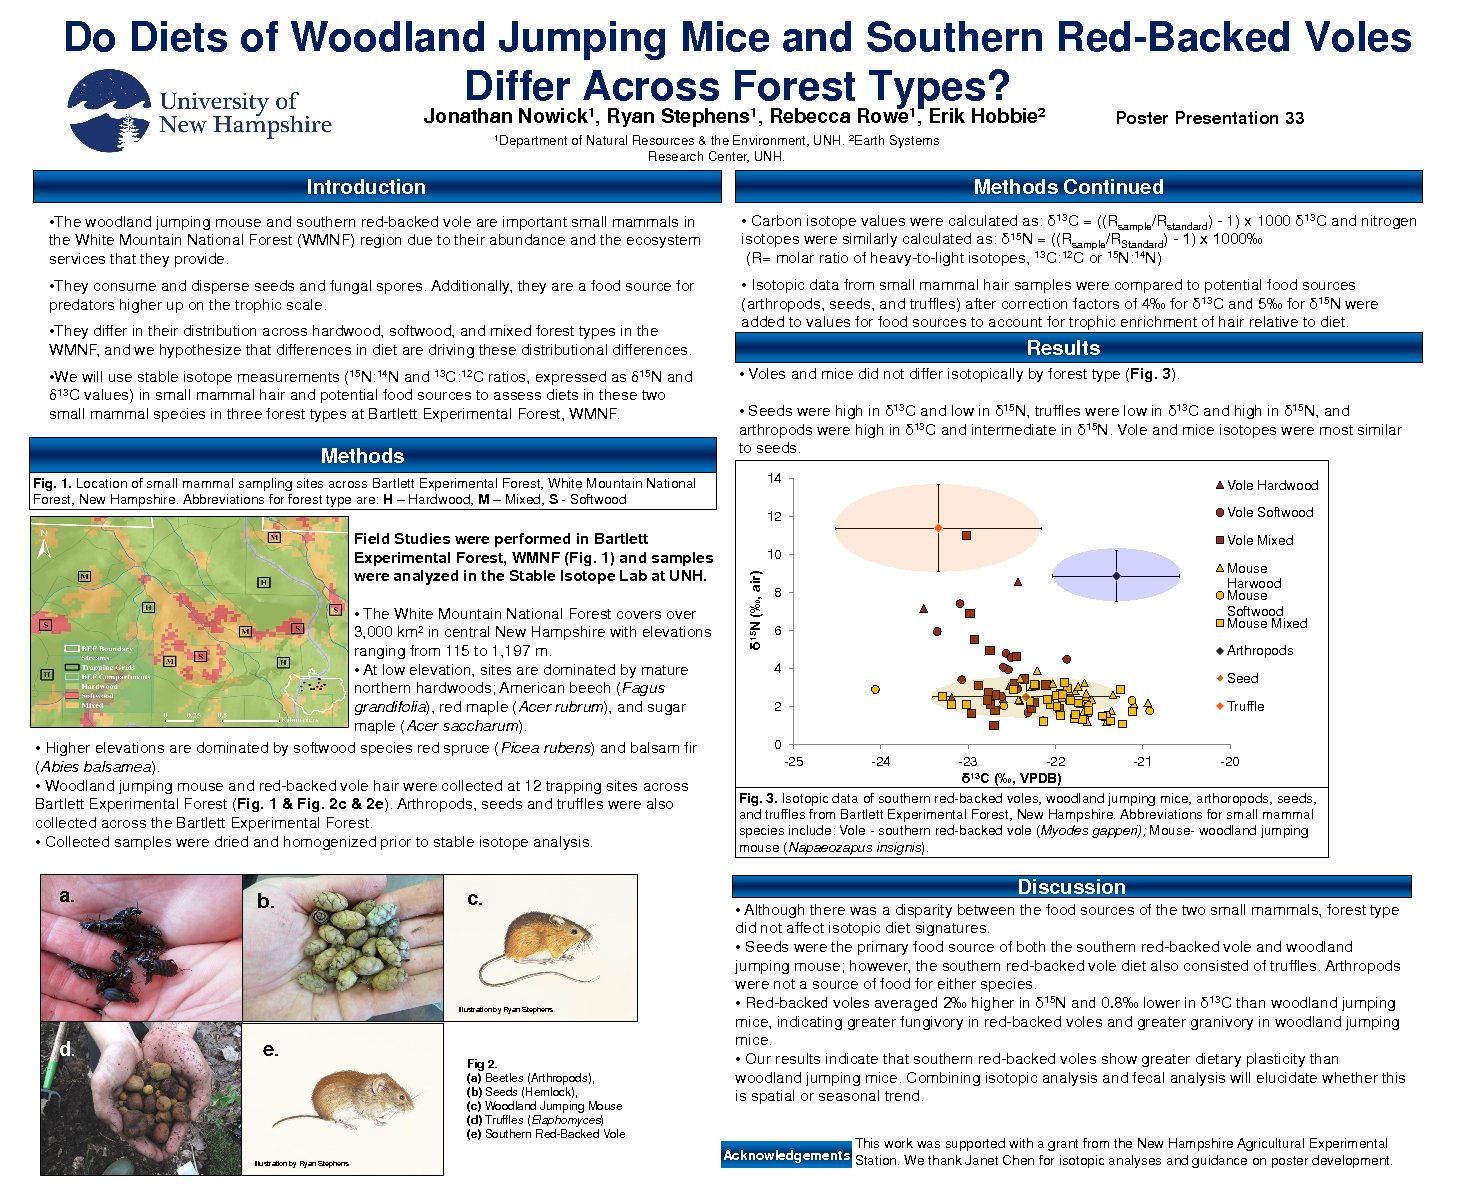 Do Diets Of Woodland Jumping Mice And Southern Red-Backed Voles Differ Across Forest Types? by jpd62